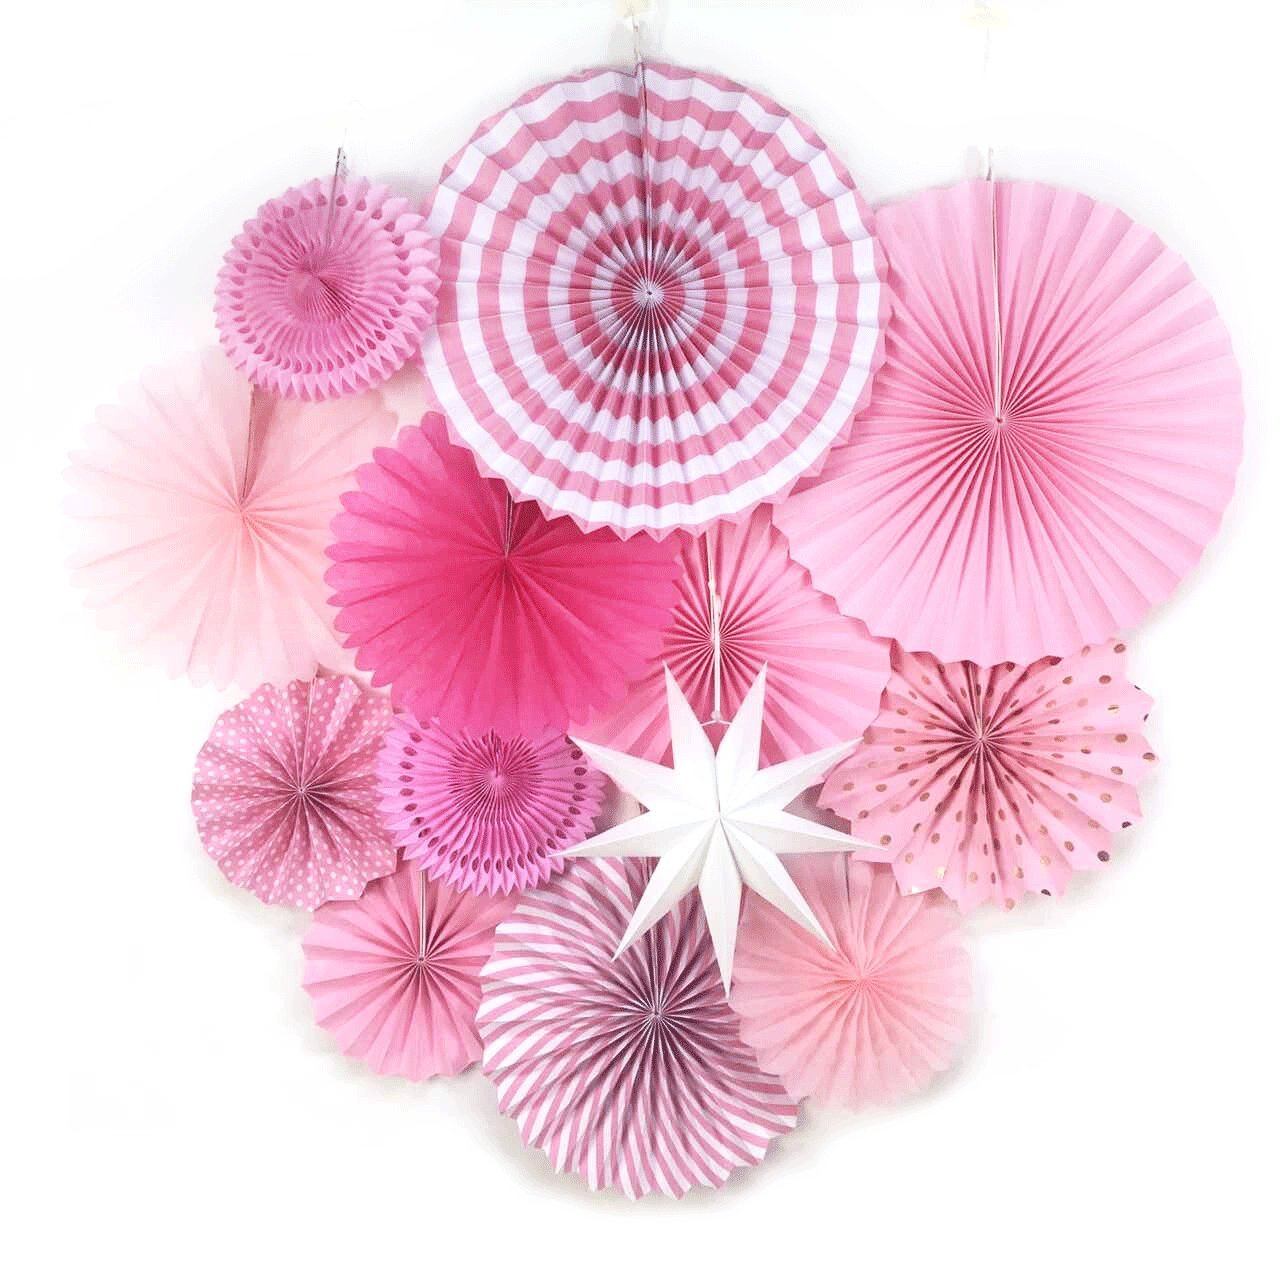 Pink Party Supplies Paper Fans Paper Rosettes Birthday Wedding Bridal Showers Hanging Decorations SUNBEAUTY 13 Pieces